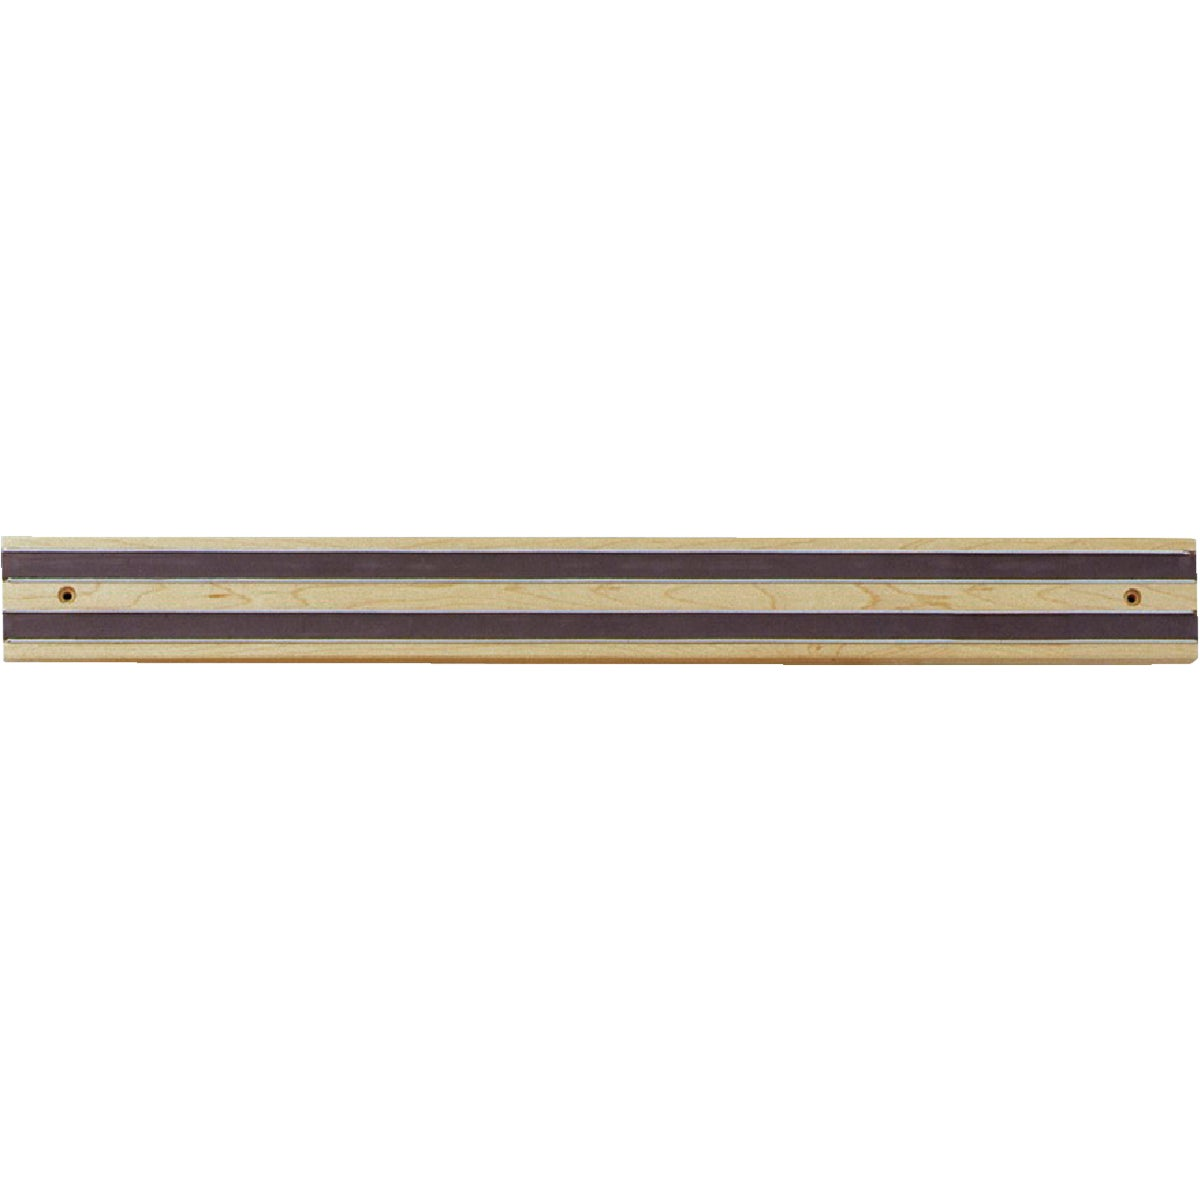 "18"" MAGNETIC KNIFE BAR - 22 by Norpro"